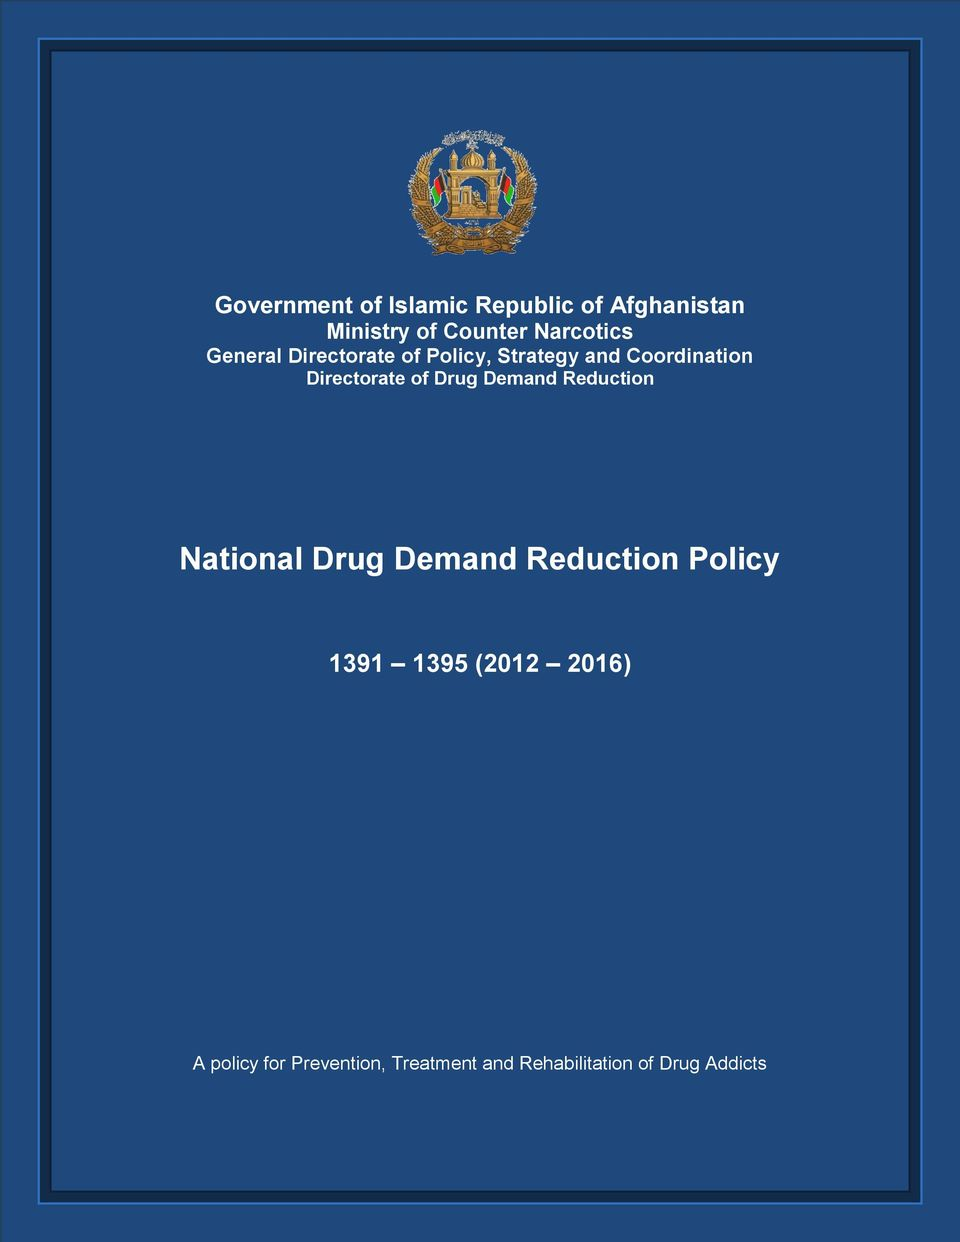 Reduction National Drug Demand Reduction Policy 1391 1395 (2012